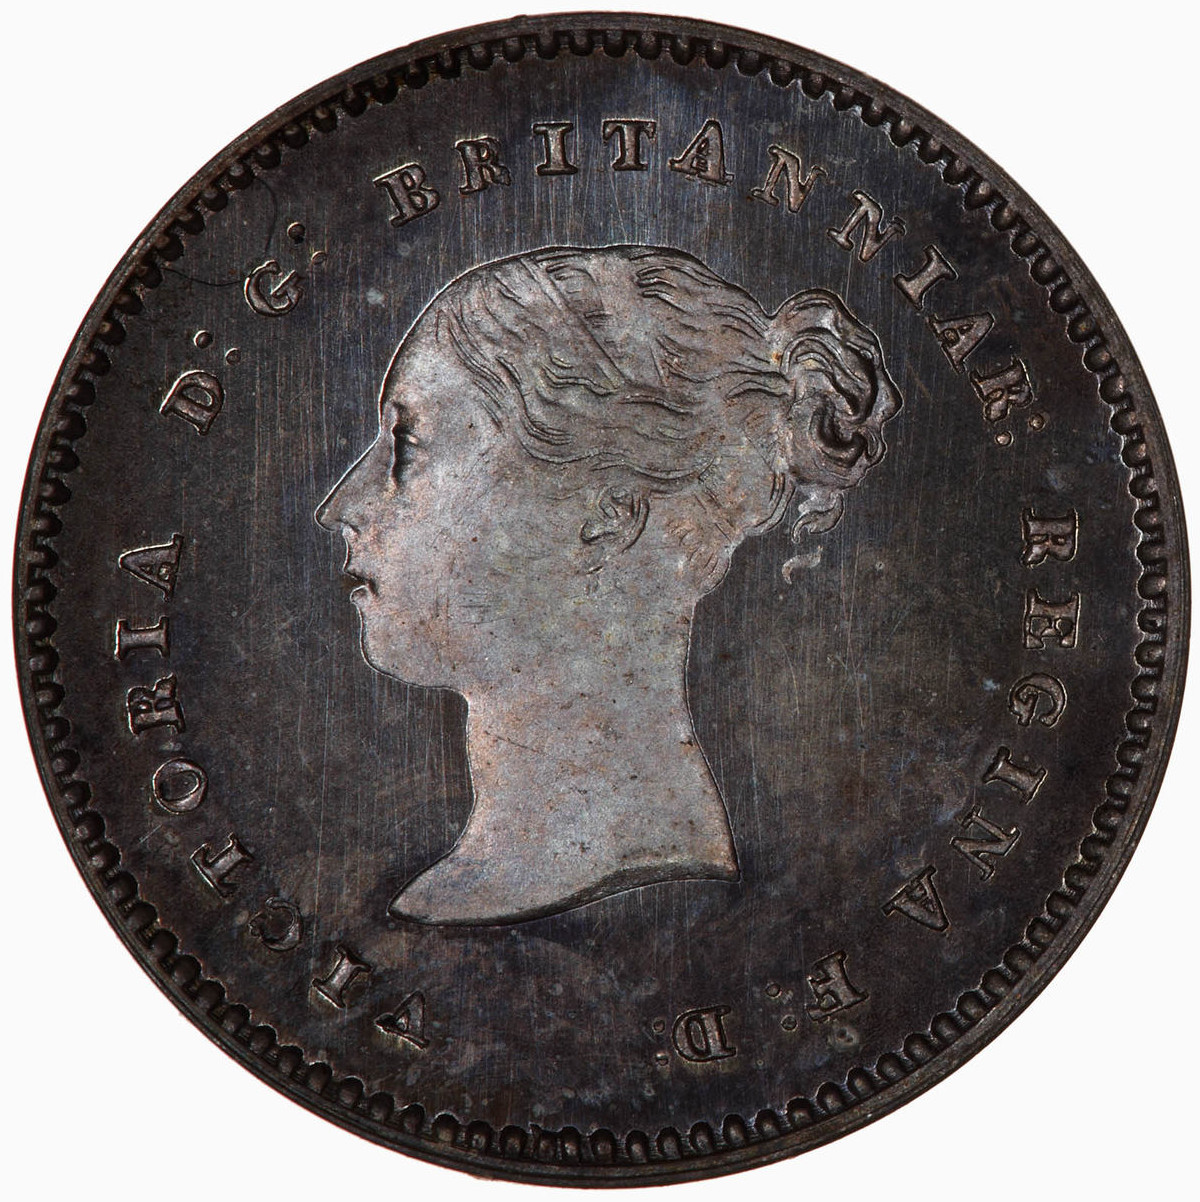 Maundy Twopence (Pre-decimal): Photo Coin - Twopence (Maundy), Queen Victoria, Great Britain, 1877